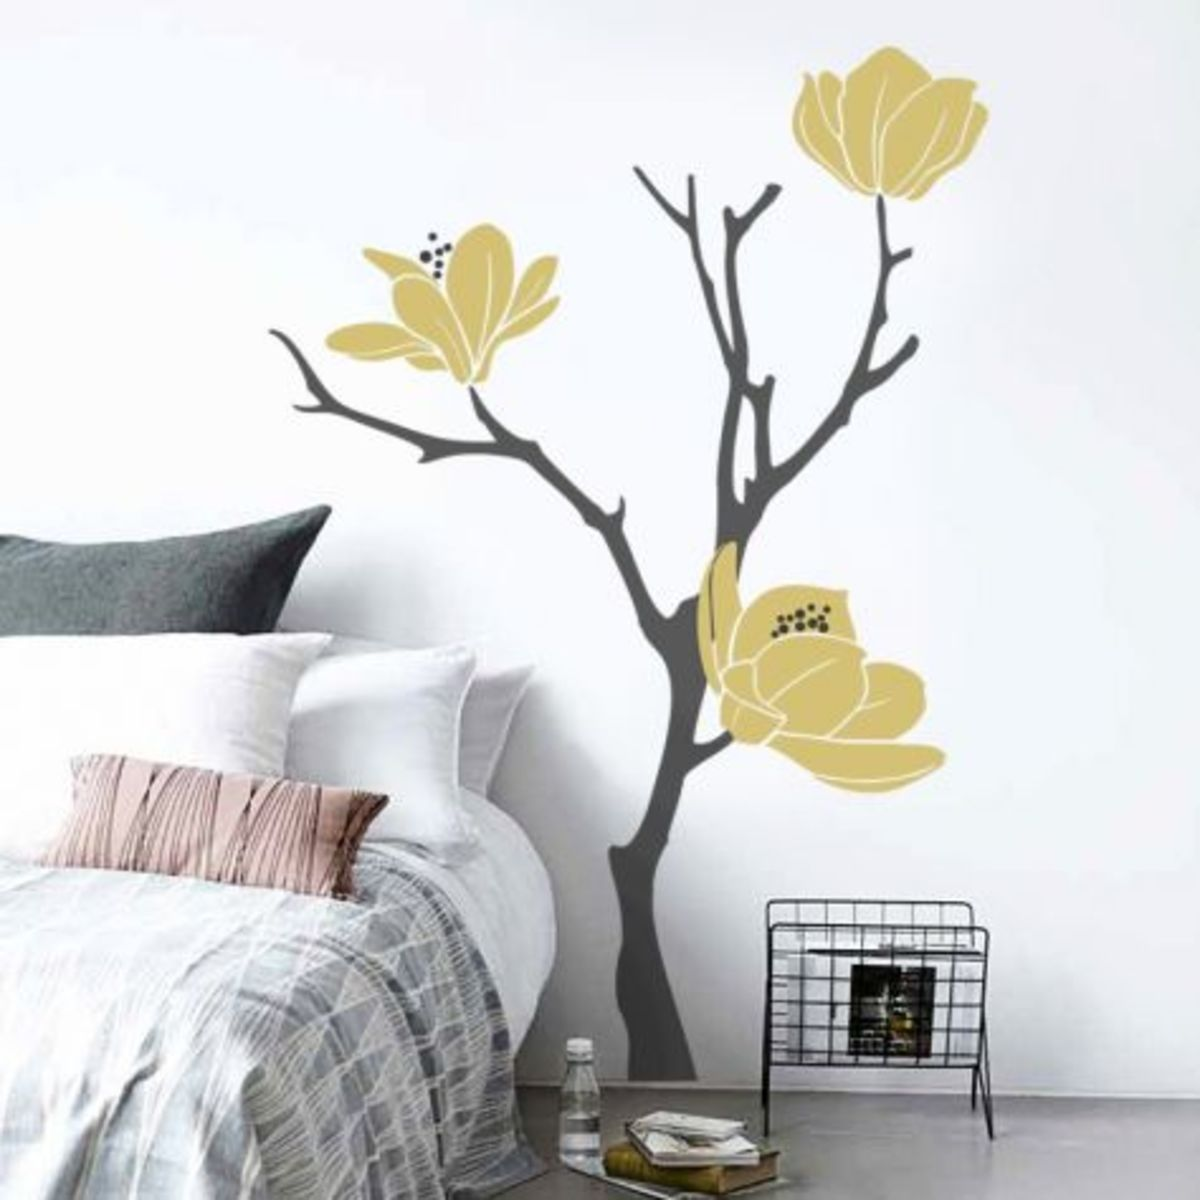 Housedecor magnolia 30917-0, 88x63